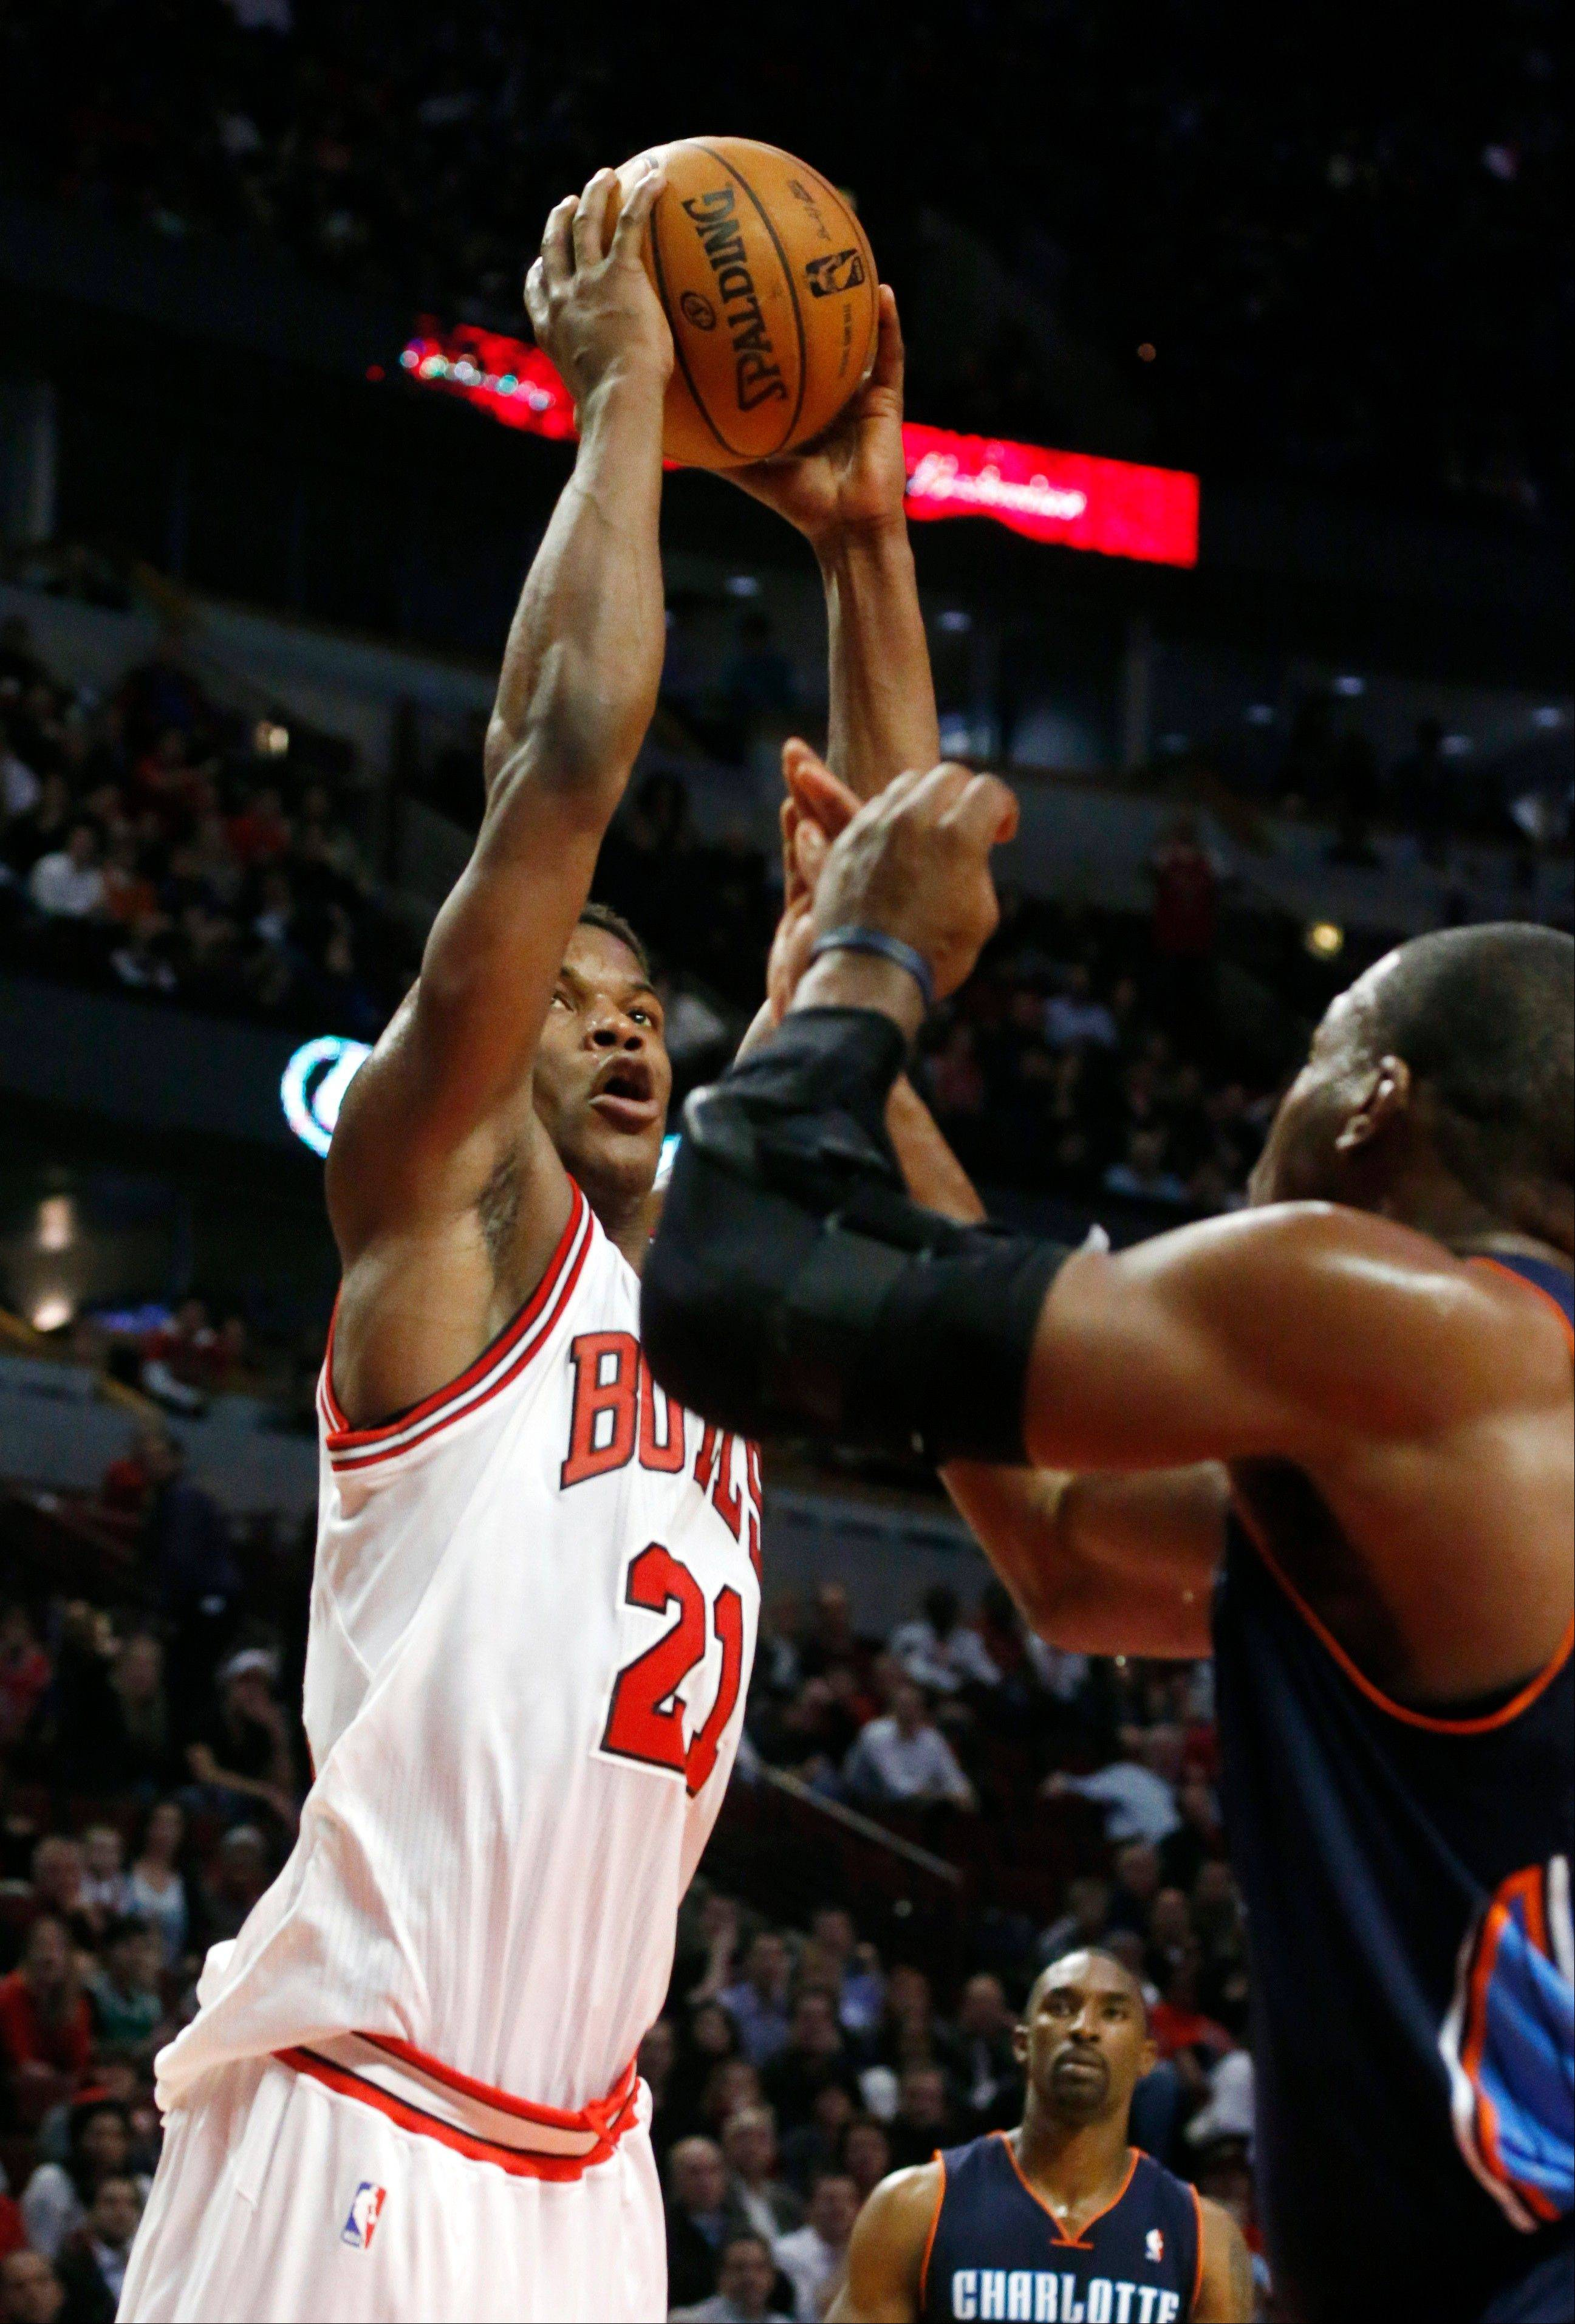 Bulls forward Jimmy Butler shoots over Charlotte's Jeff Adrien during Monday night's victory over the Bobcats.